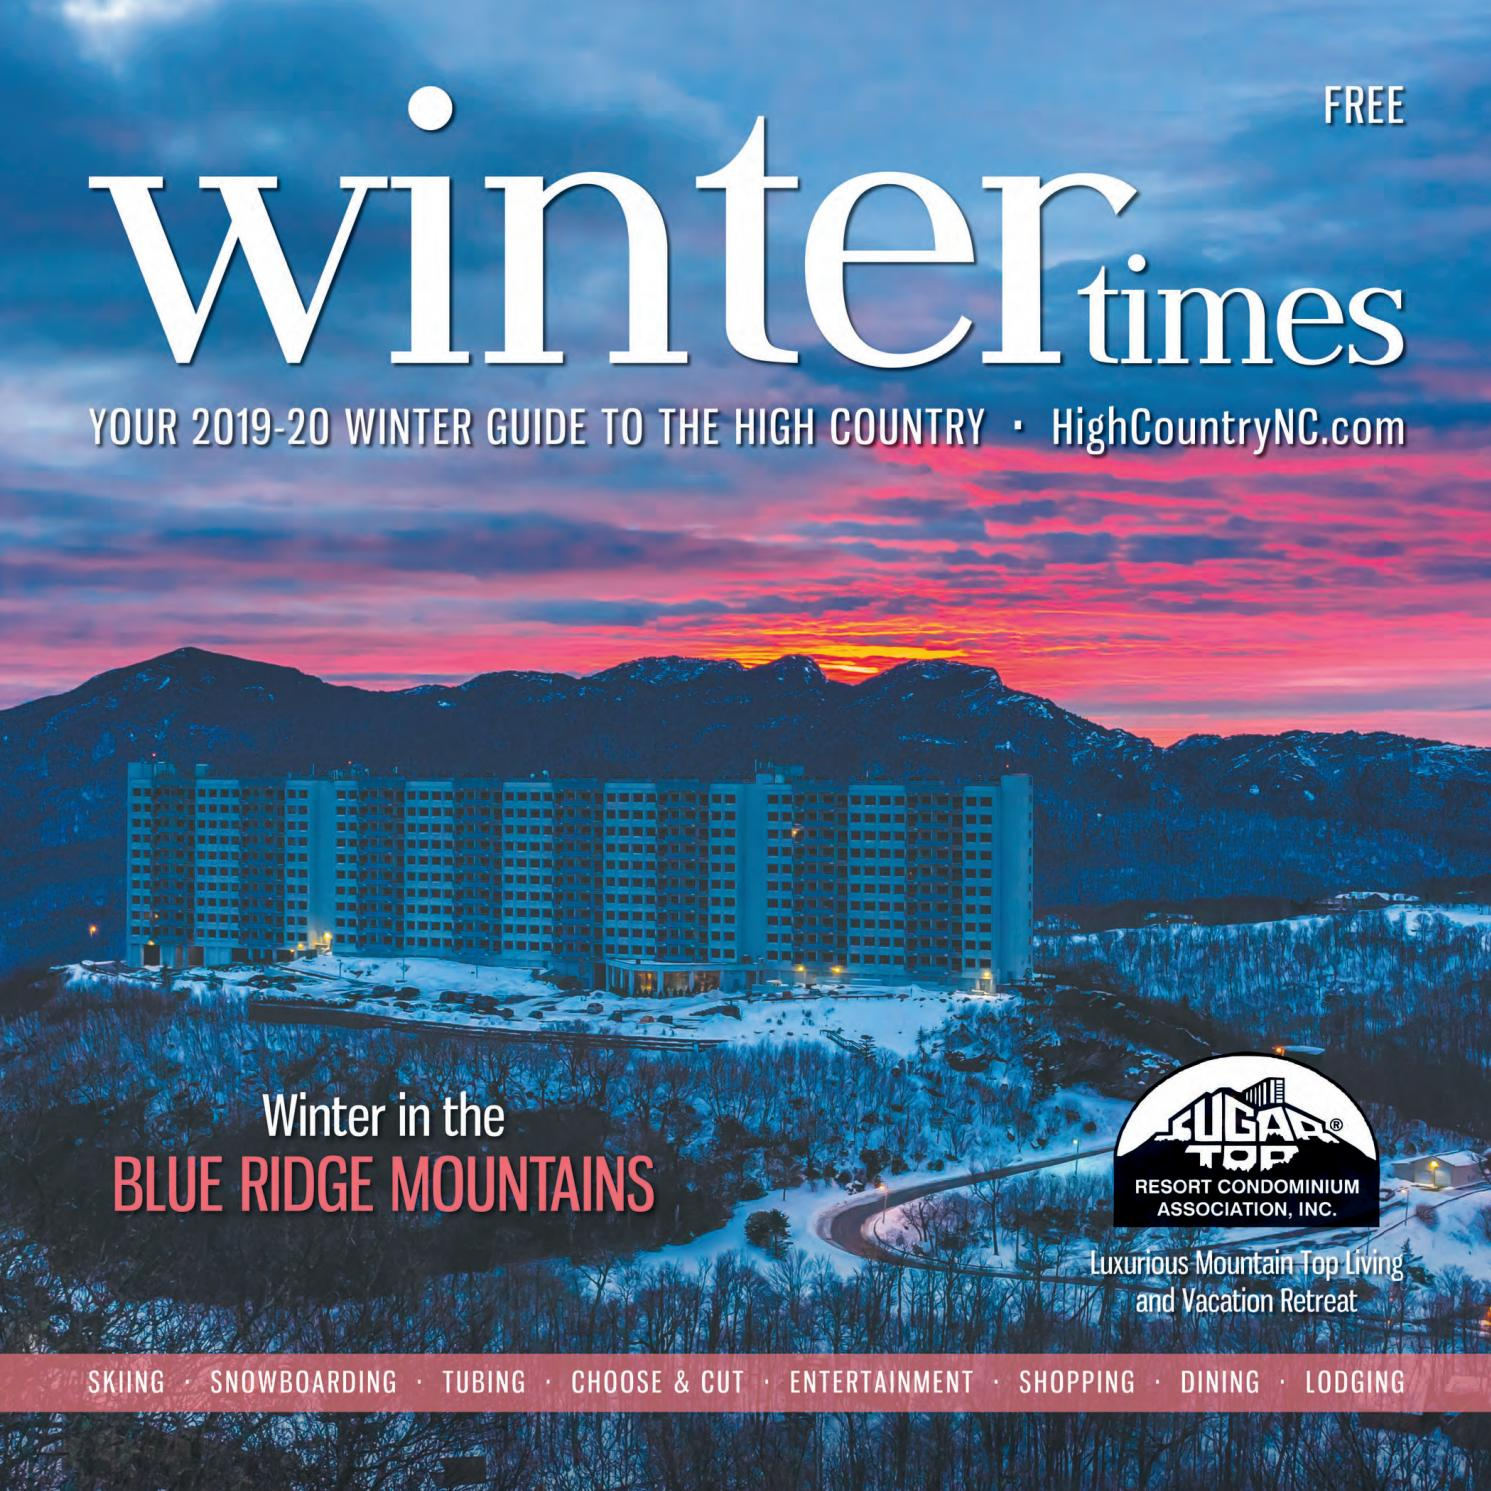 winter times 2019 20 by mountain times